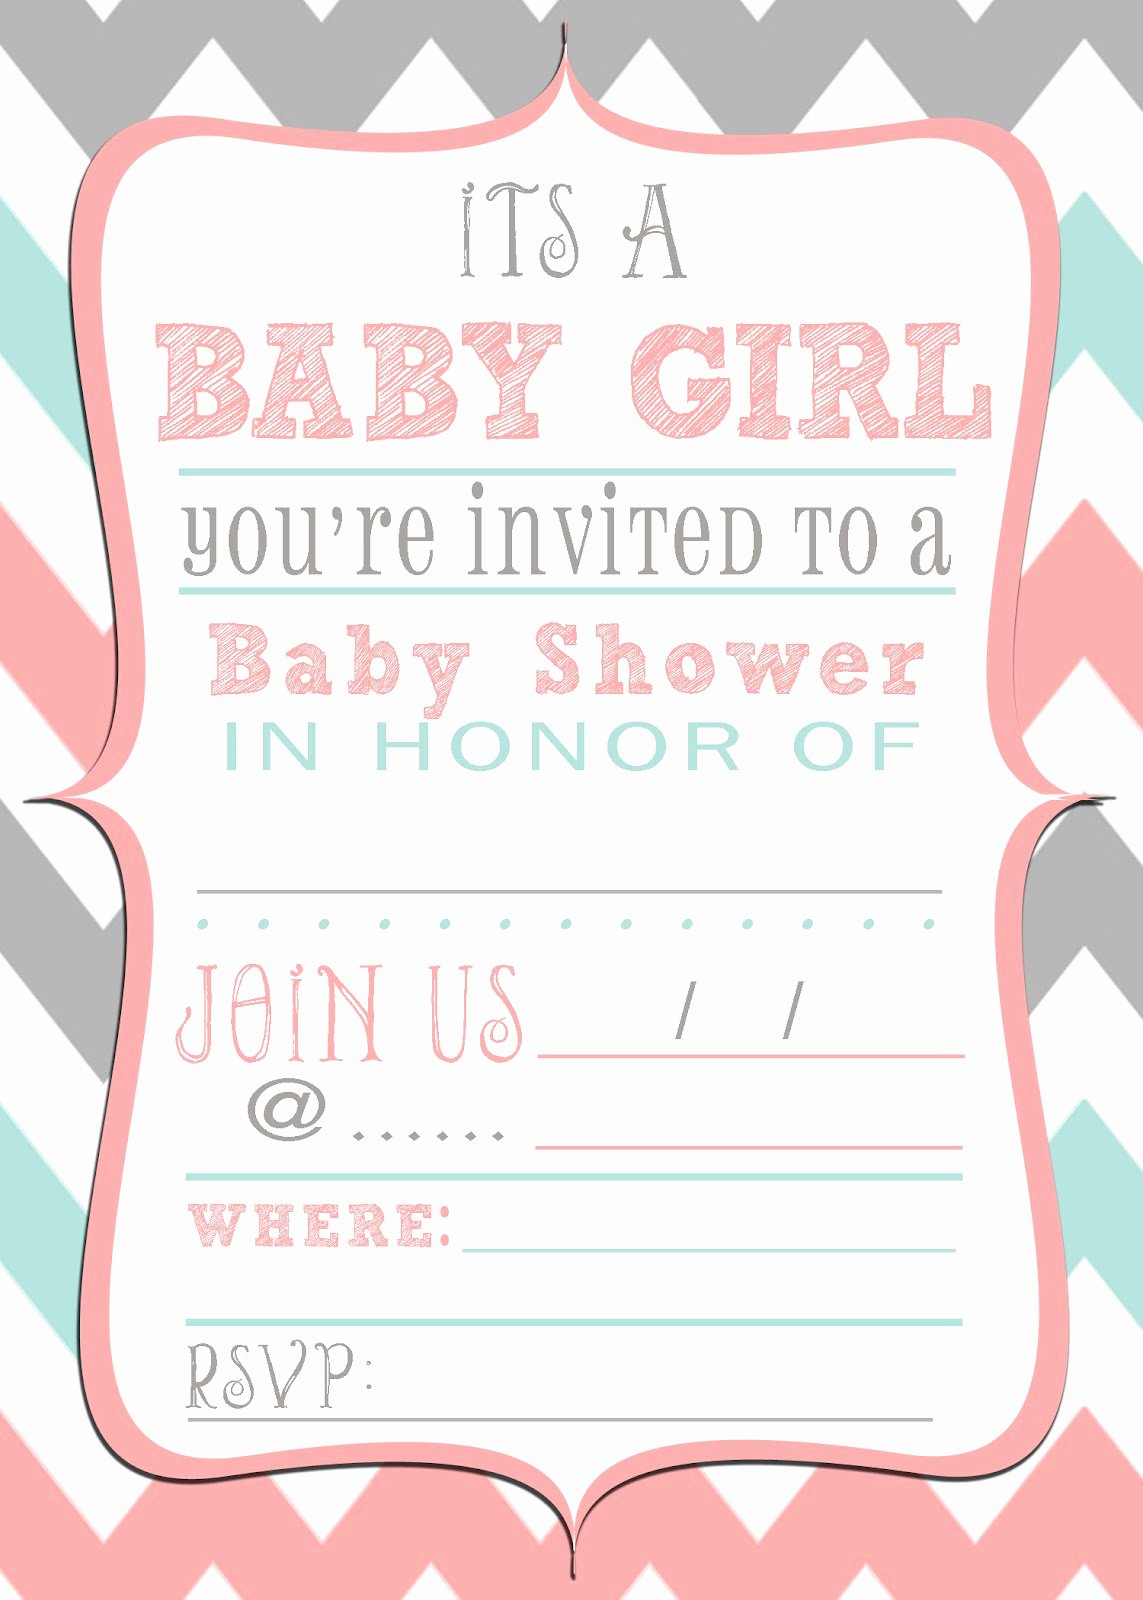 Free Baby Shower Invitation Templates Inspirational Mrs This and that Baby Shower Banner Free Downloads